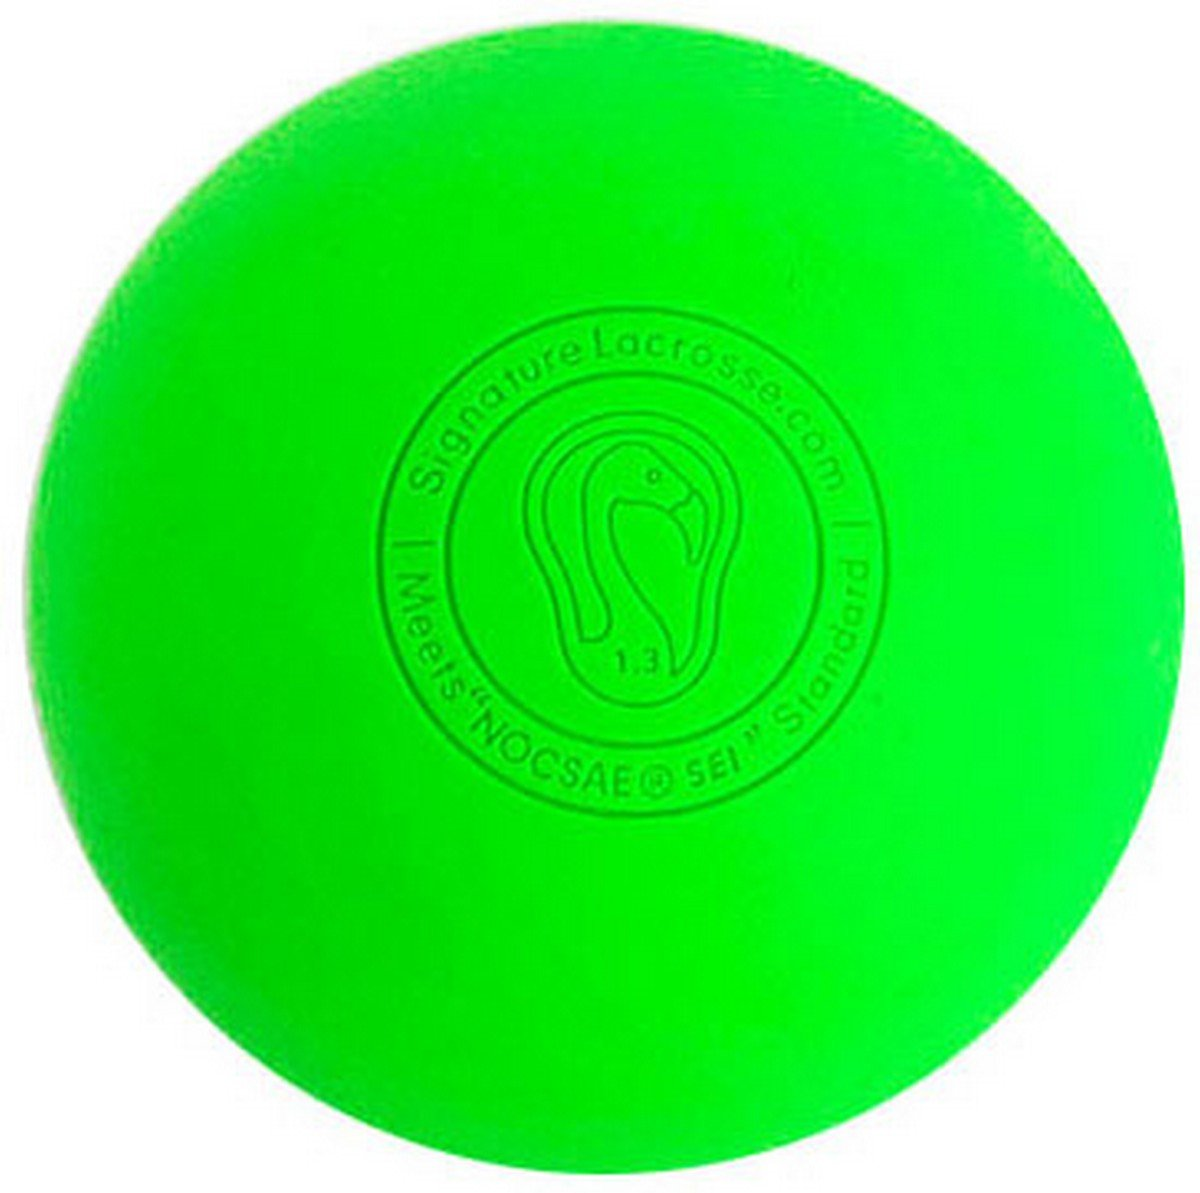 Signature Lacrosse Ball (12-Ball) Neon Green NOCSAE & SEI Approved Green-12P